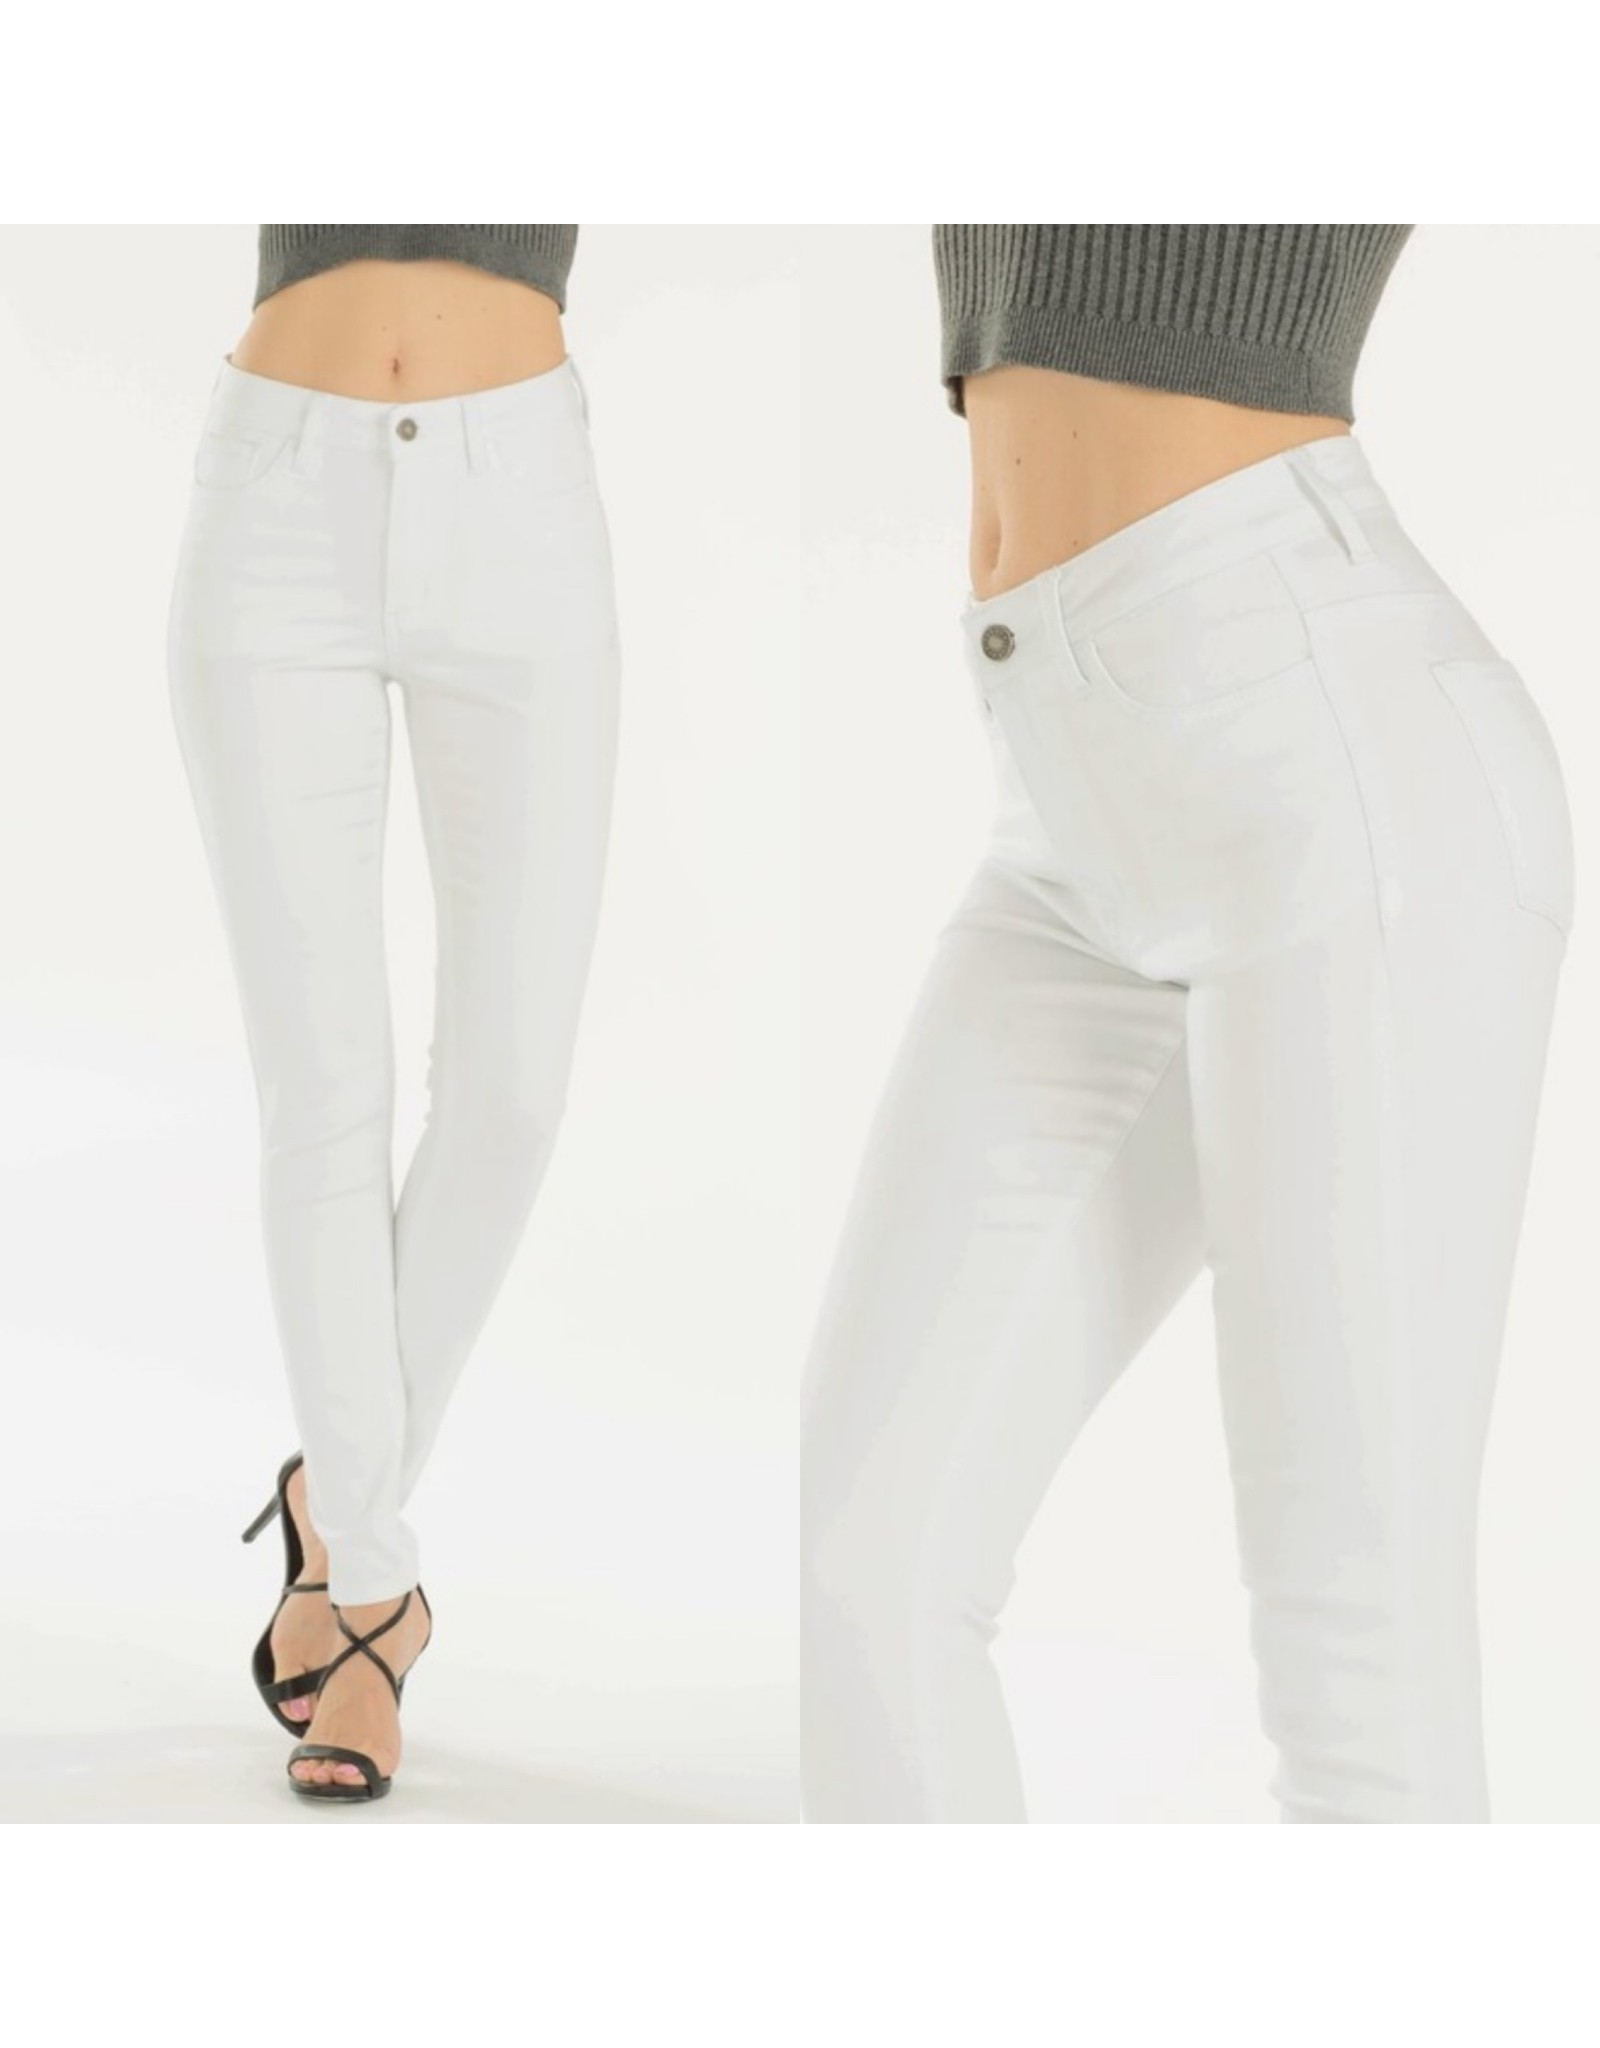 SHOW STOPPER White Jeans